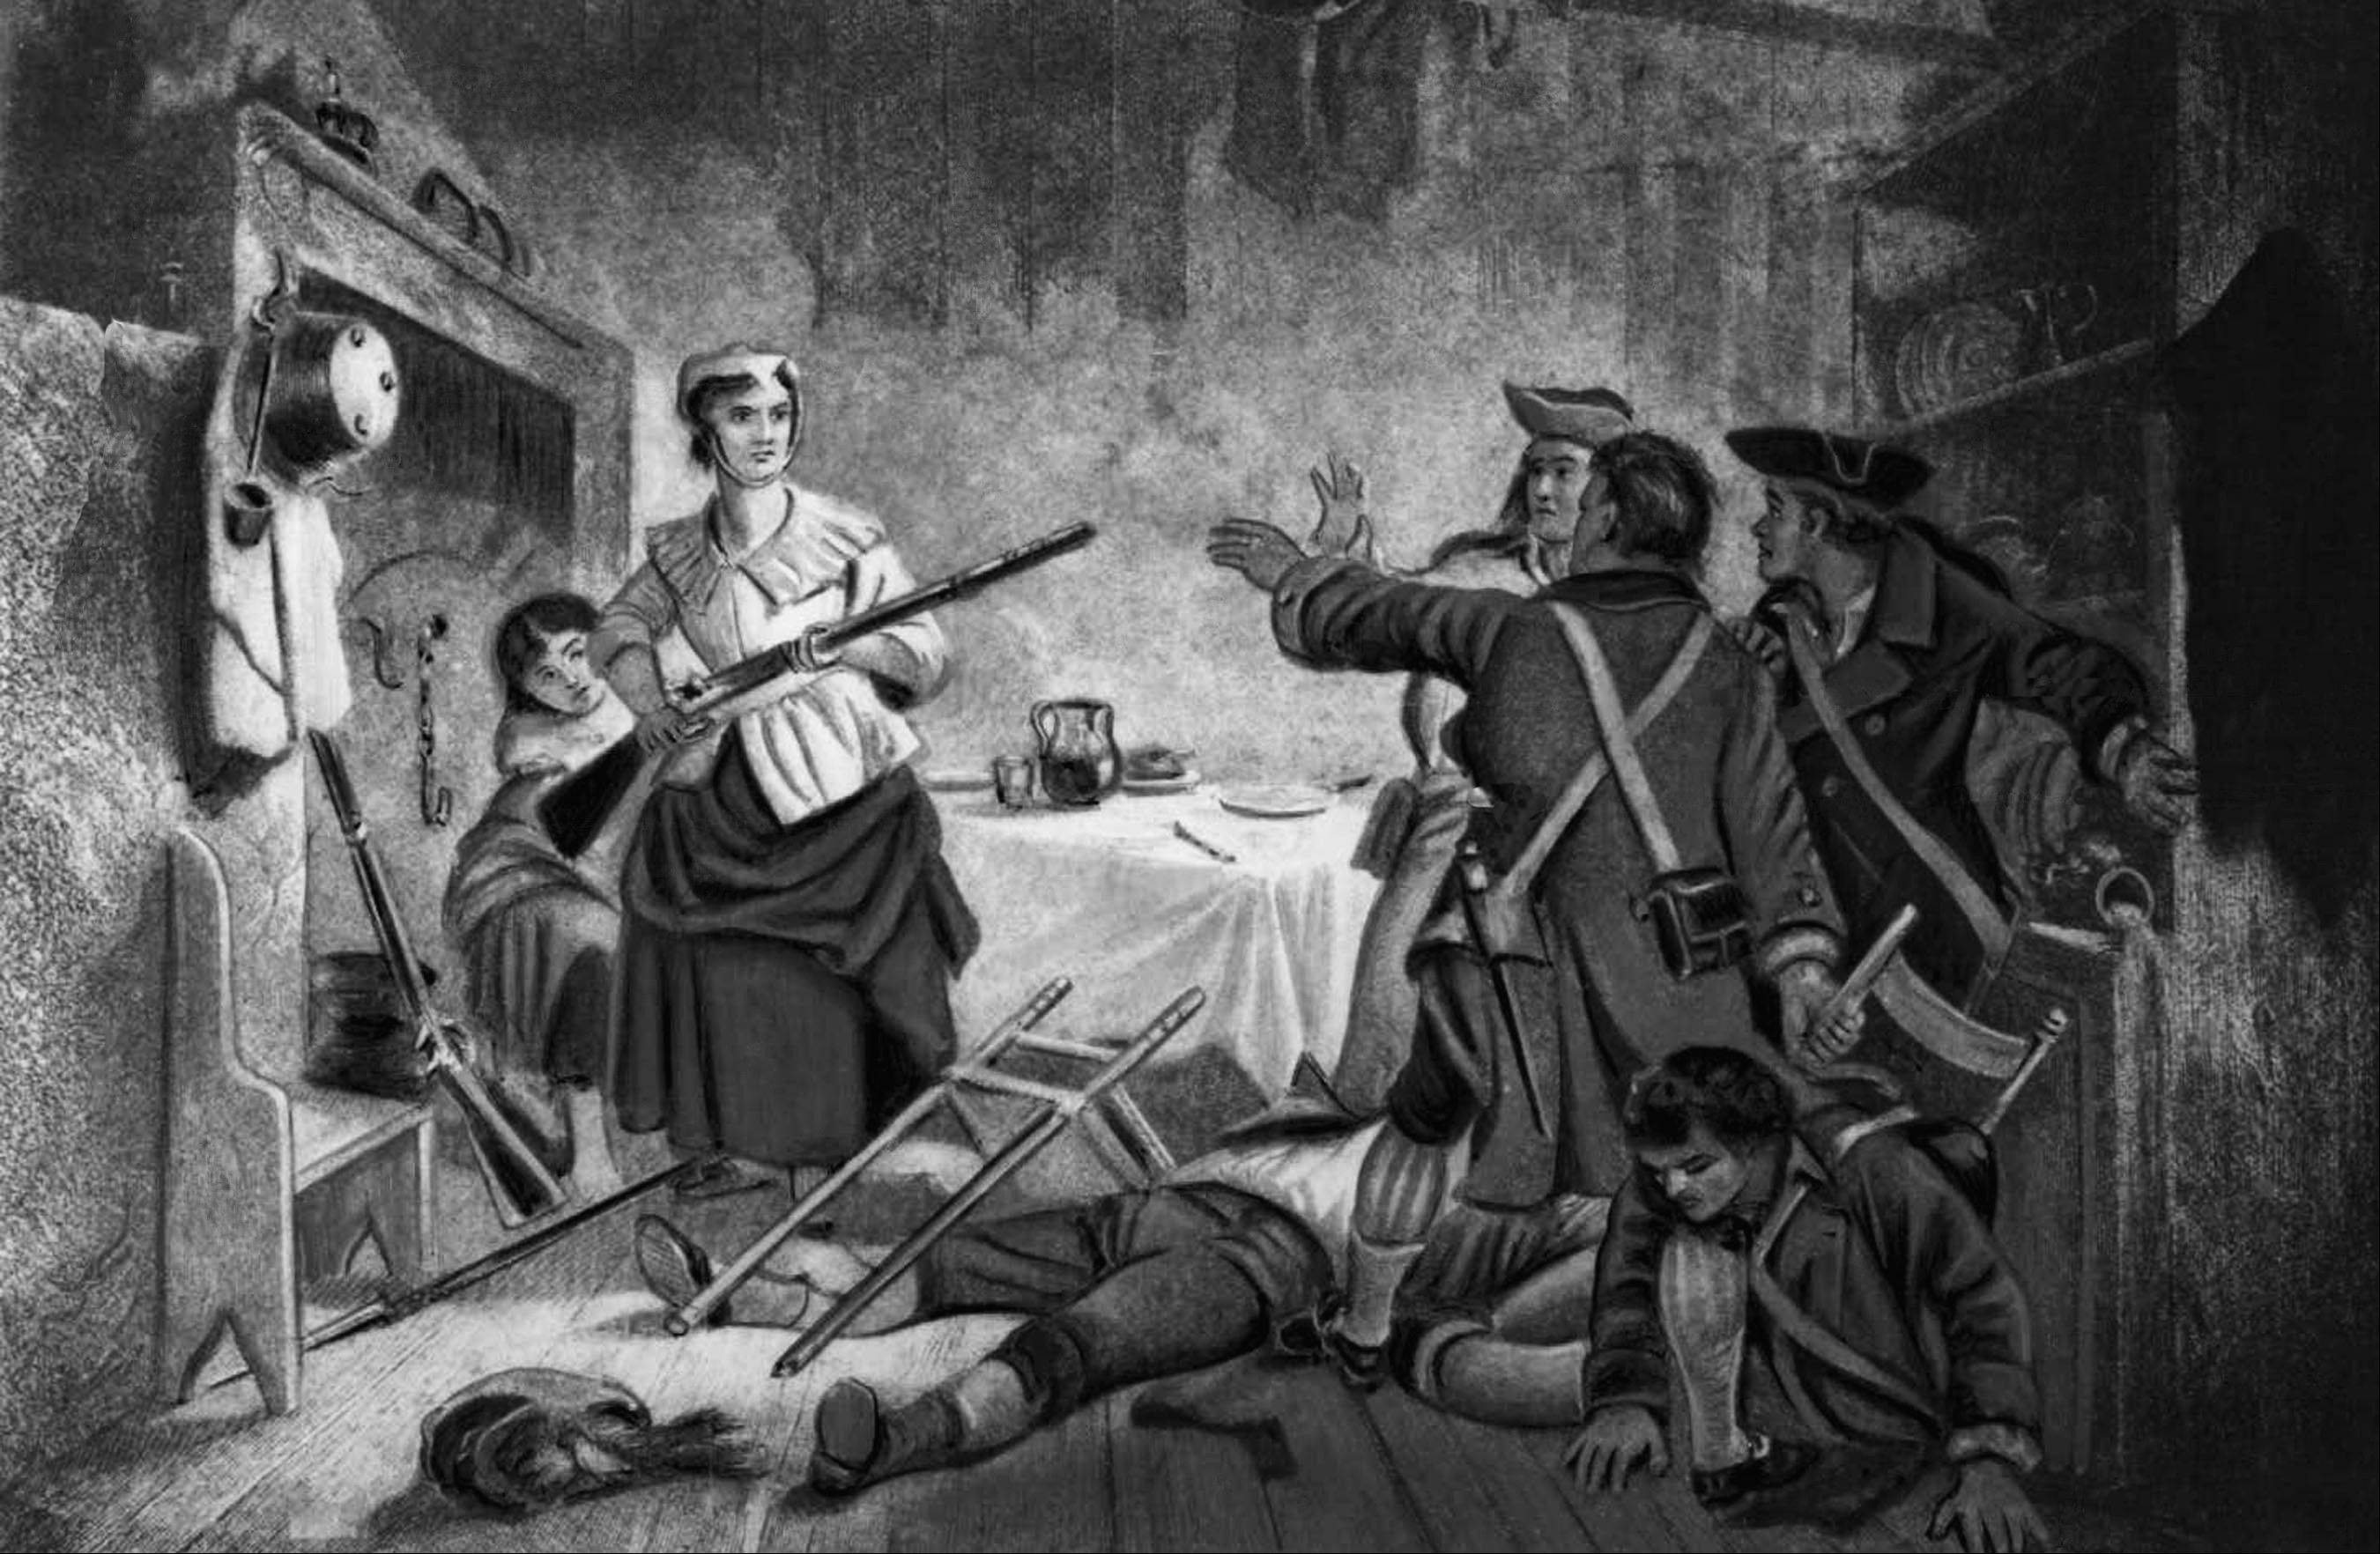 In this illustration, Nancy Morgan Hart, an American colonist living in Georgia, defends her home and children against invading British soldiers during the American Revolutionary War. According to legend, Hart captured and killed British soldiers during the war.